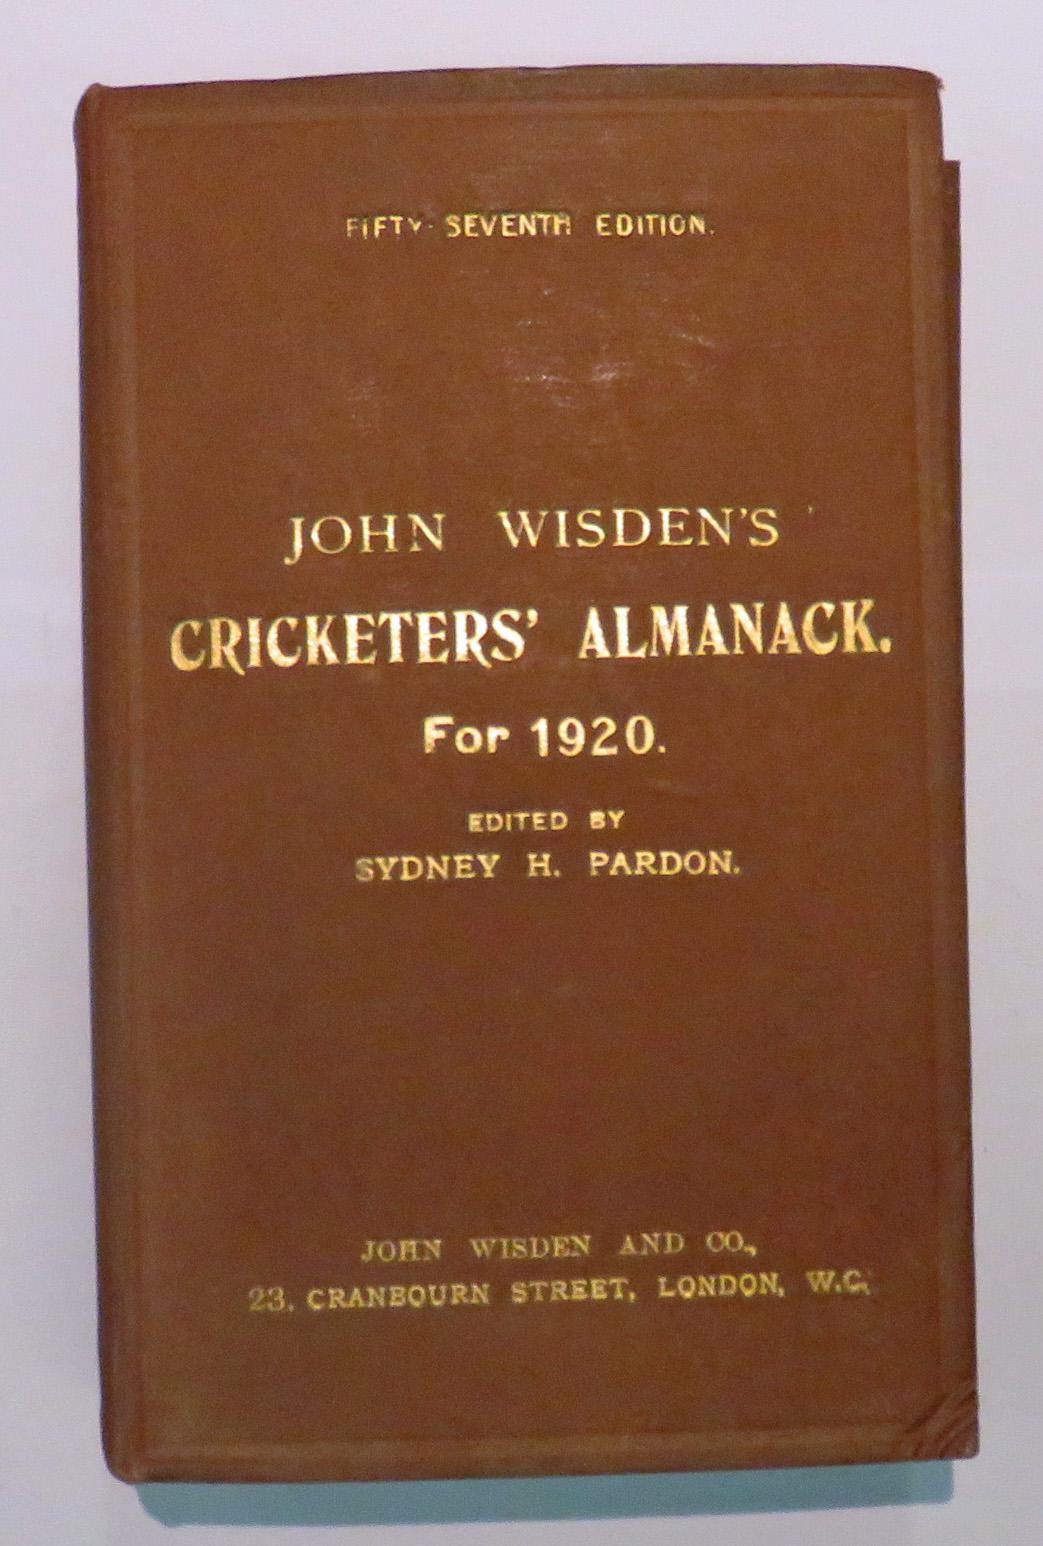 **John Wisden's Cricketers' Almanack For 1920**